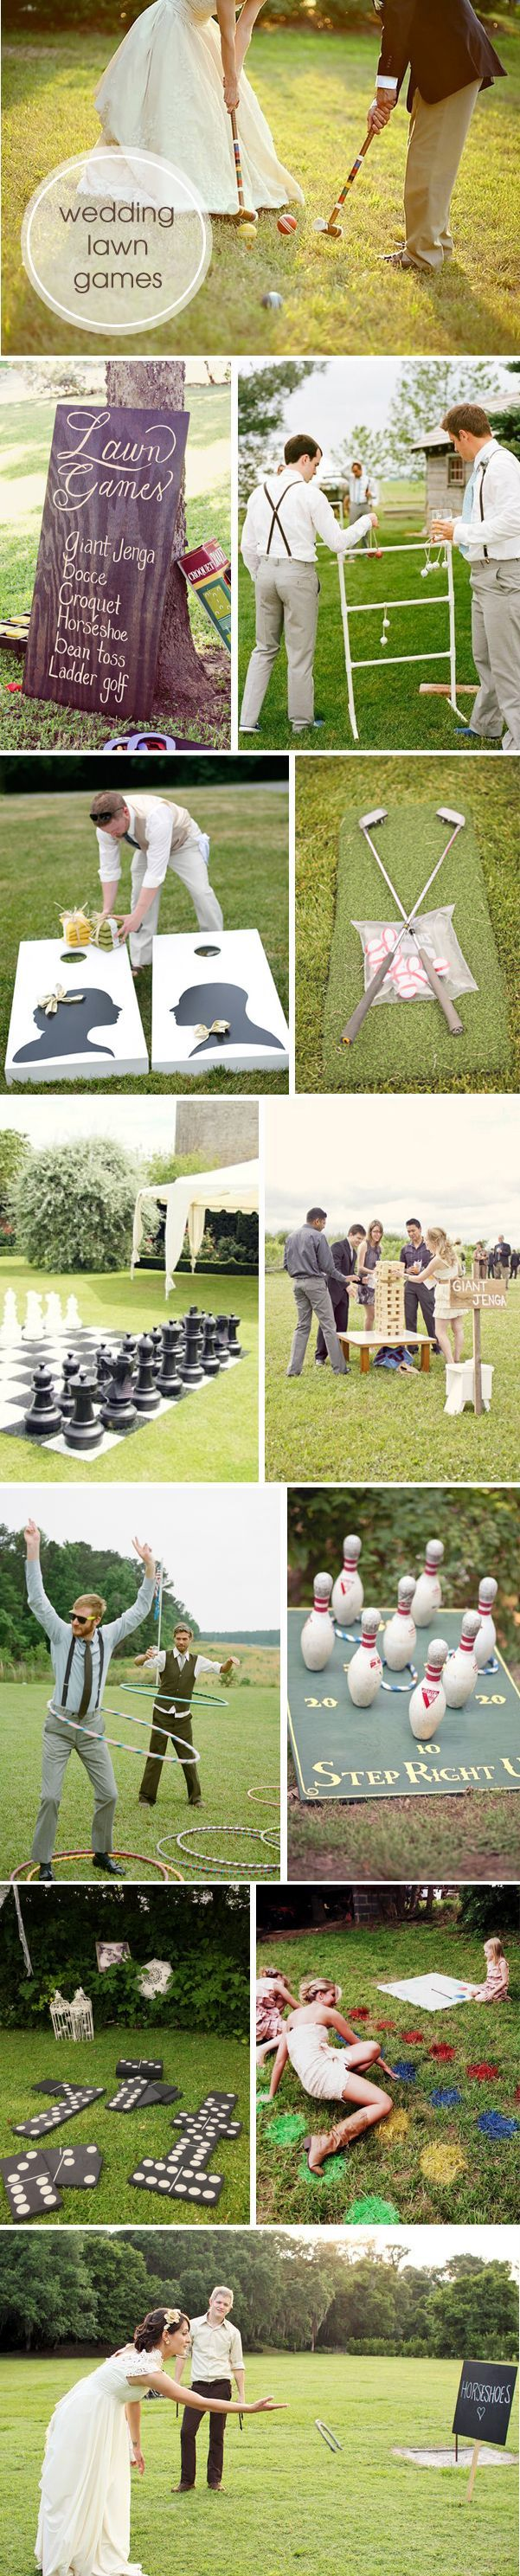 Dont have a typical wedding plan fun games for the whole party dont have a typical wedding plan fun games for the whole party to junglespirit Image collections